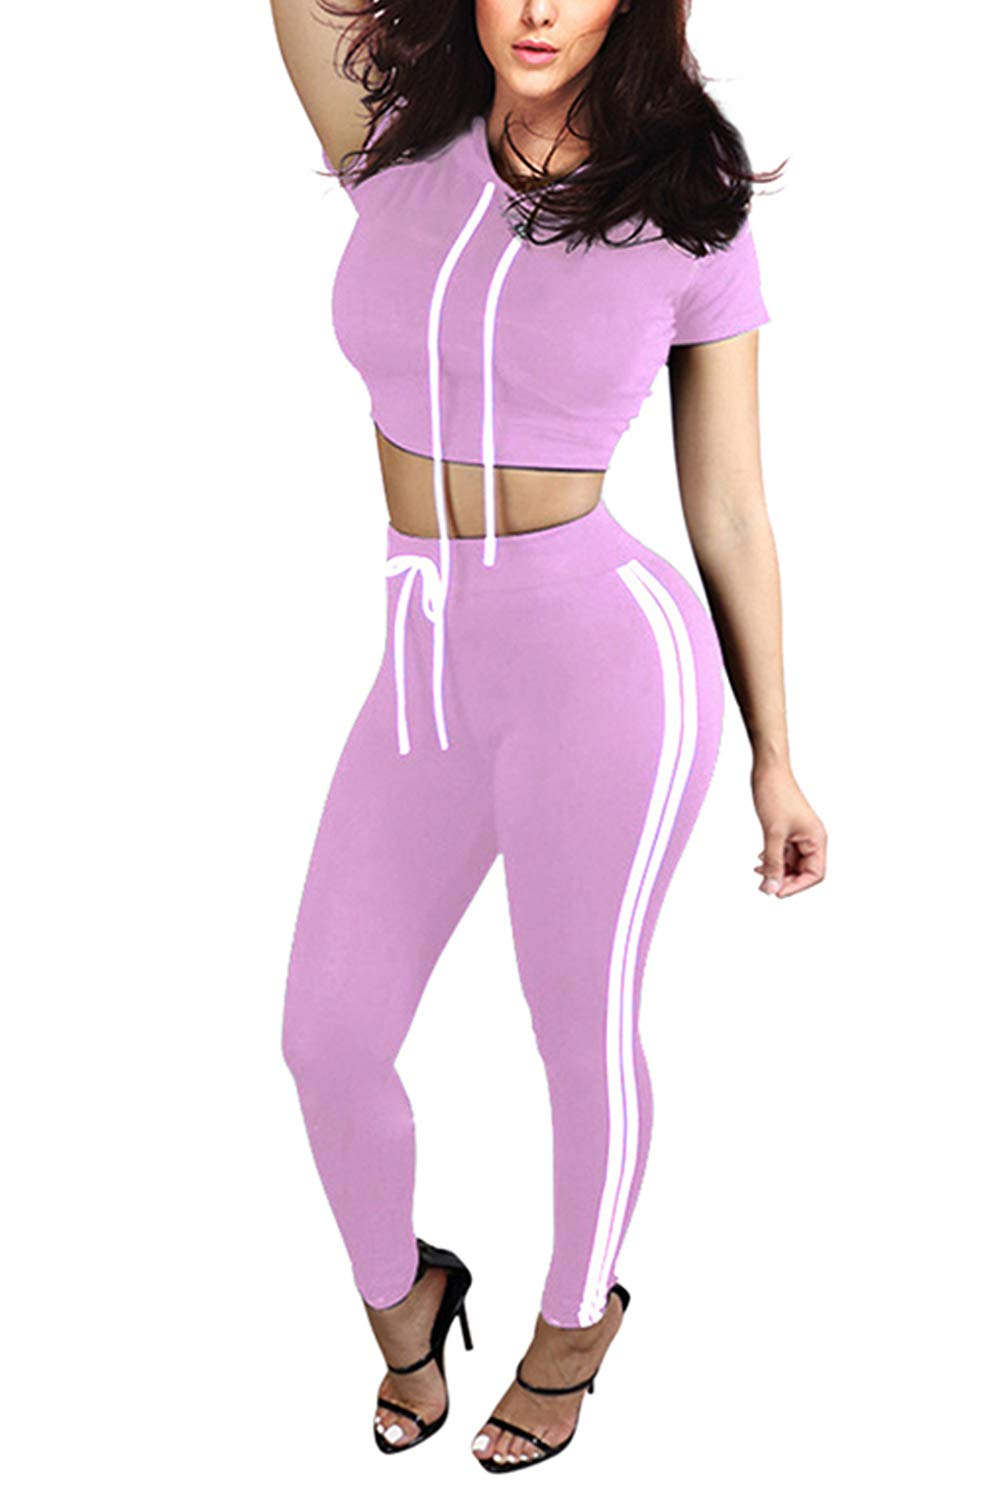 Pink Queen Women's Crop Top Top Stripe Leggings 2 Piece Workout Outfit XL Purple by Pink Queen